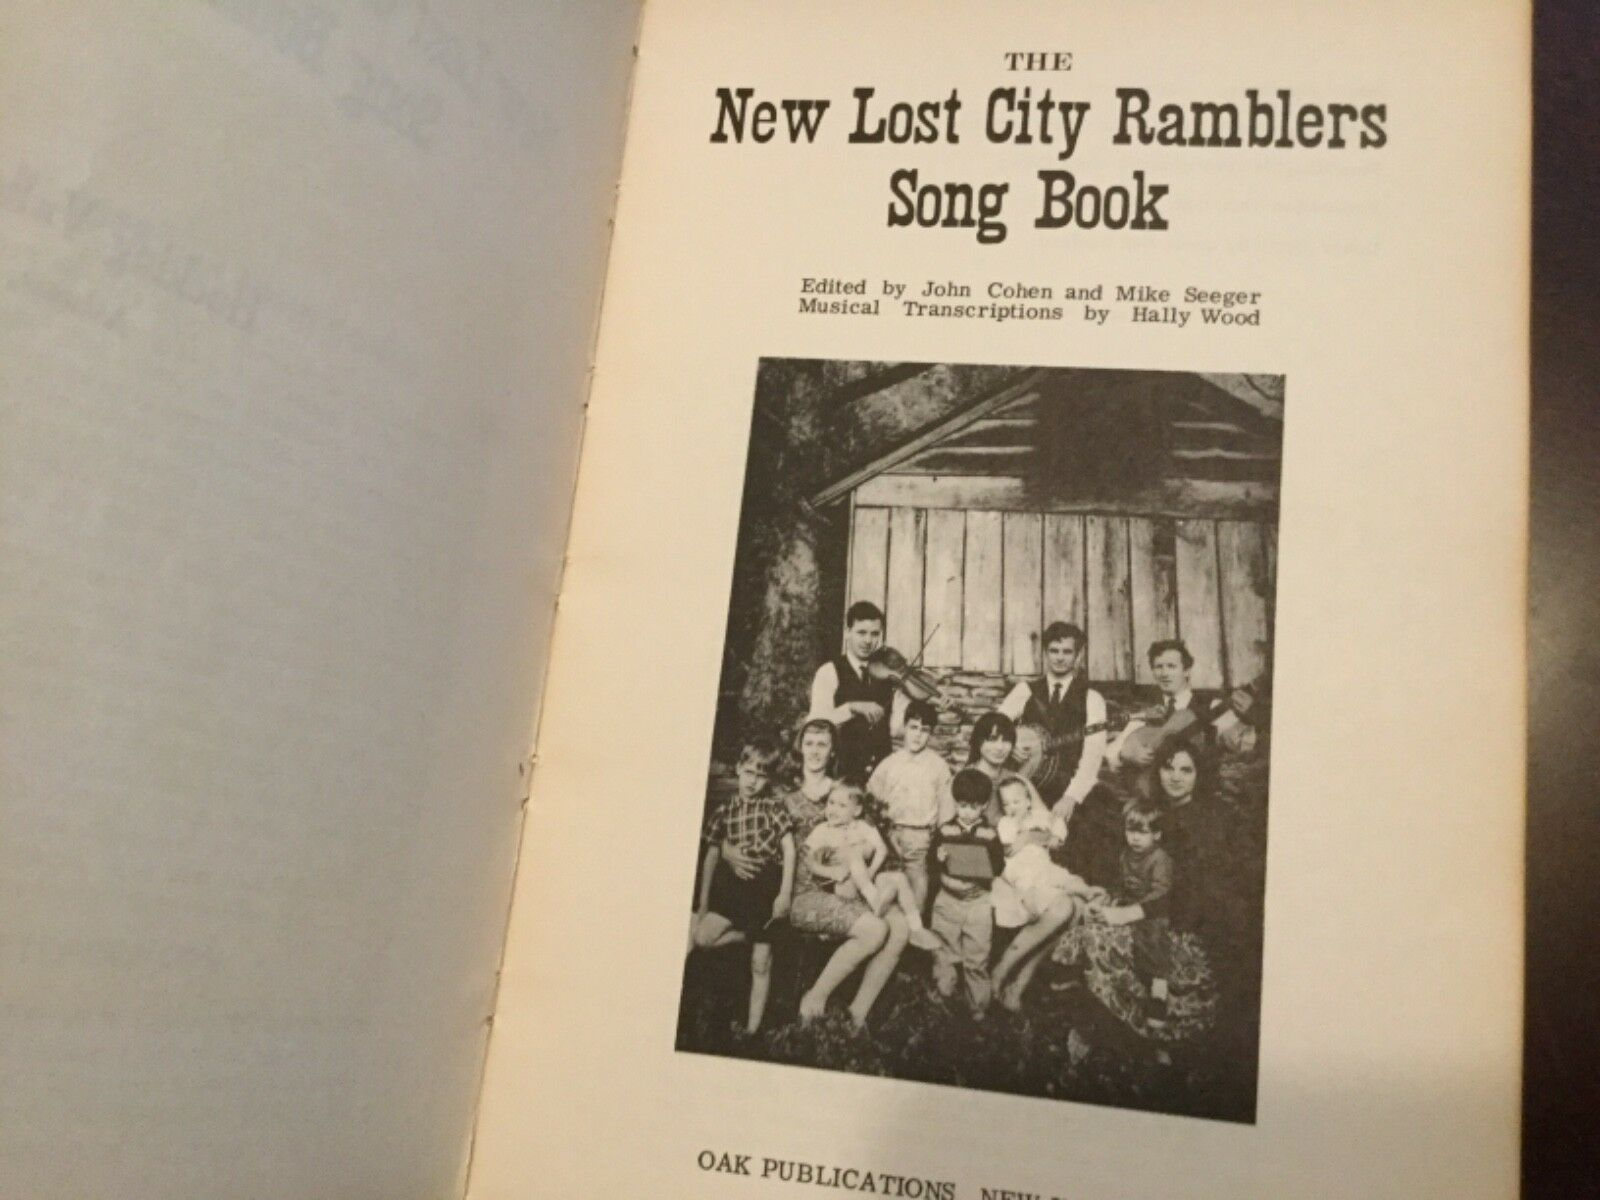 New Lost City Ramblers song book, Seeger, American folk music revival 1974